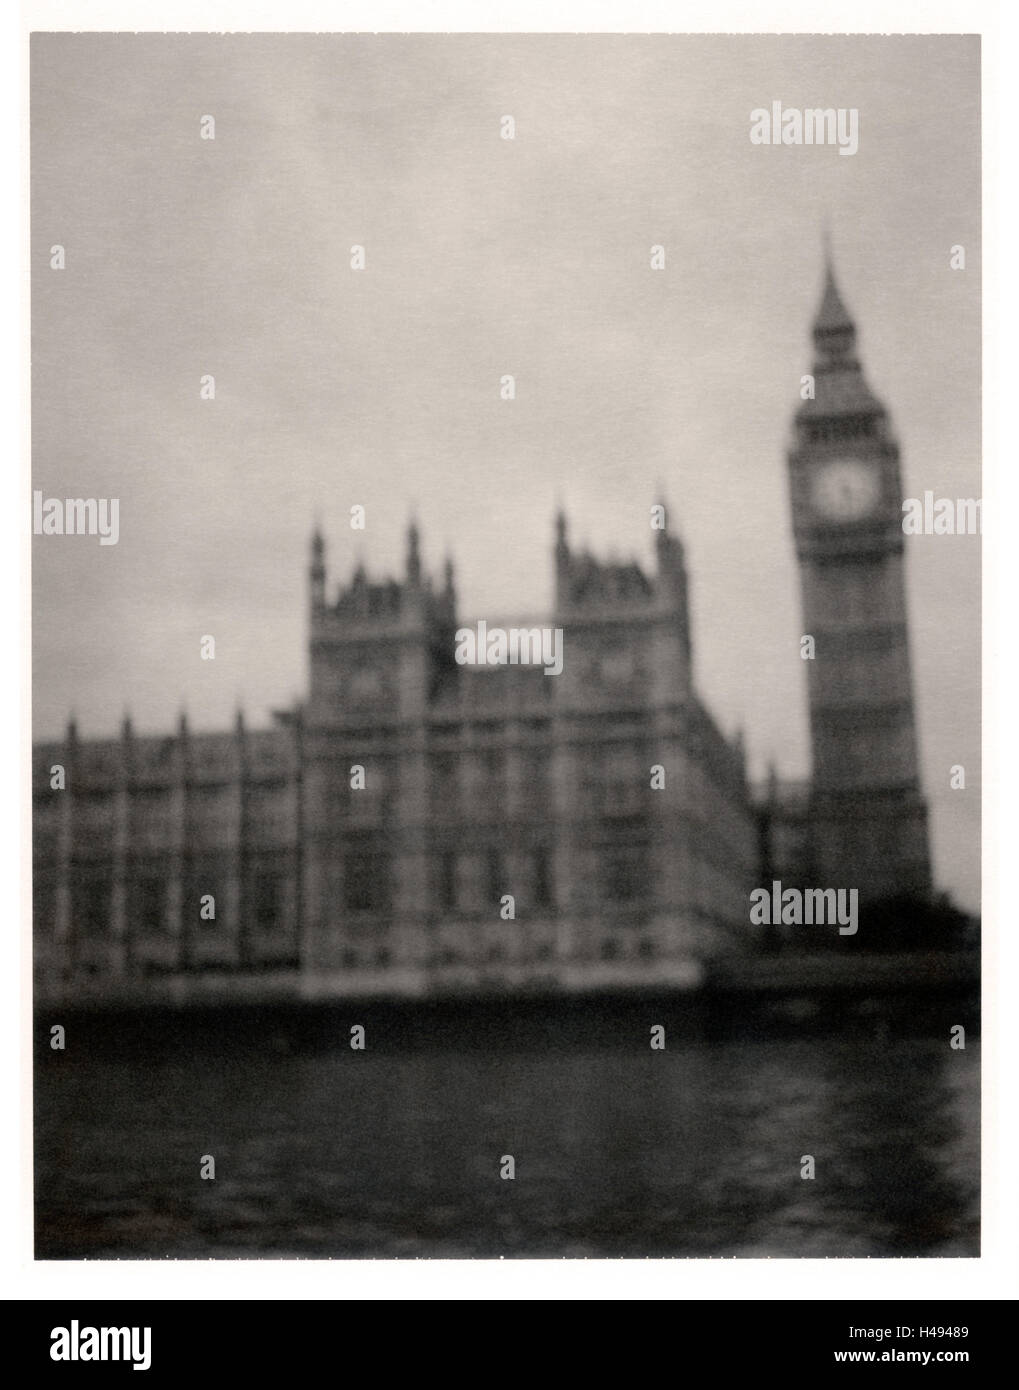 London, Thames, Big Ben and Houses of Parliament, Polaroid photograph, - Stock Image